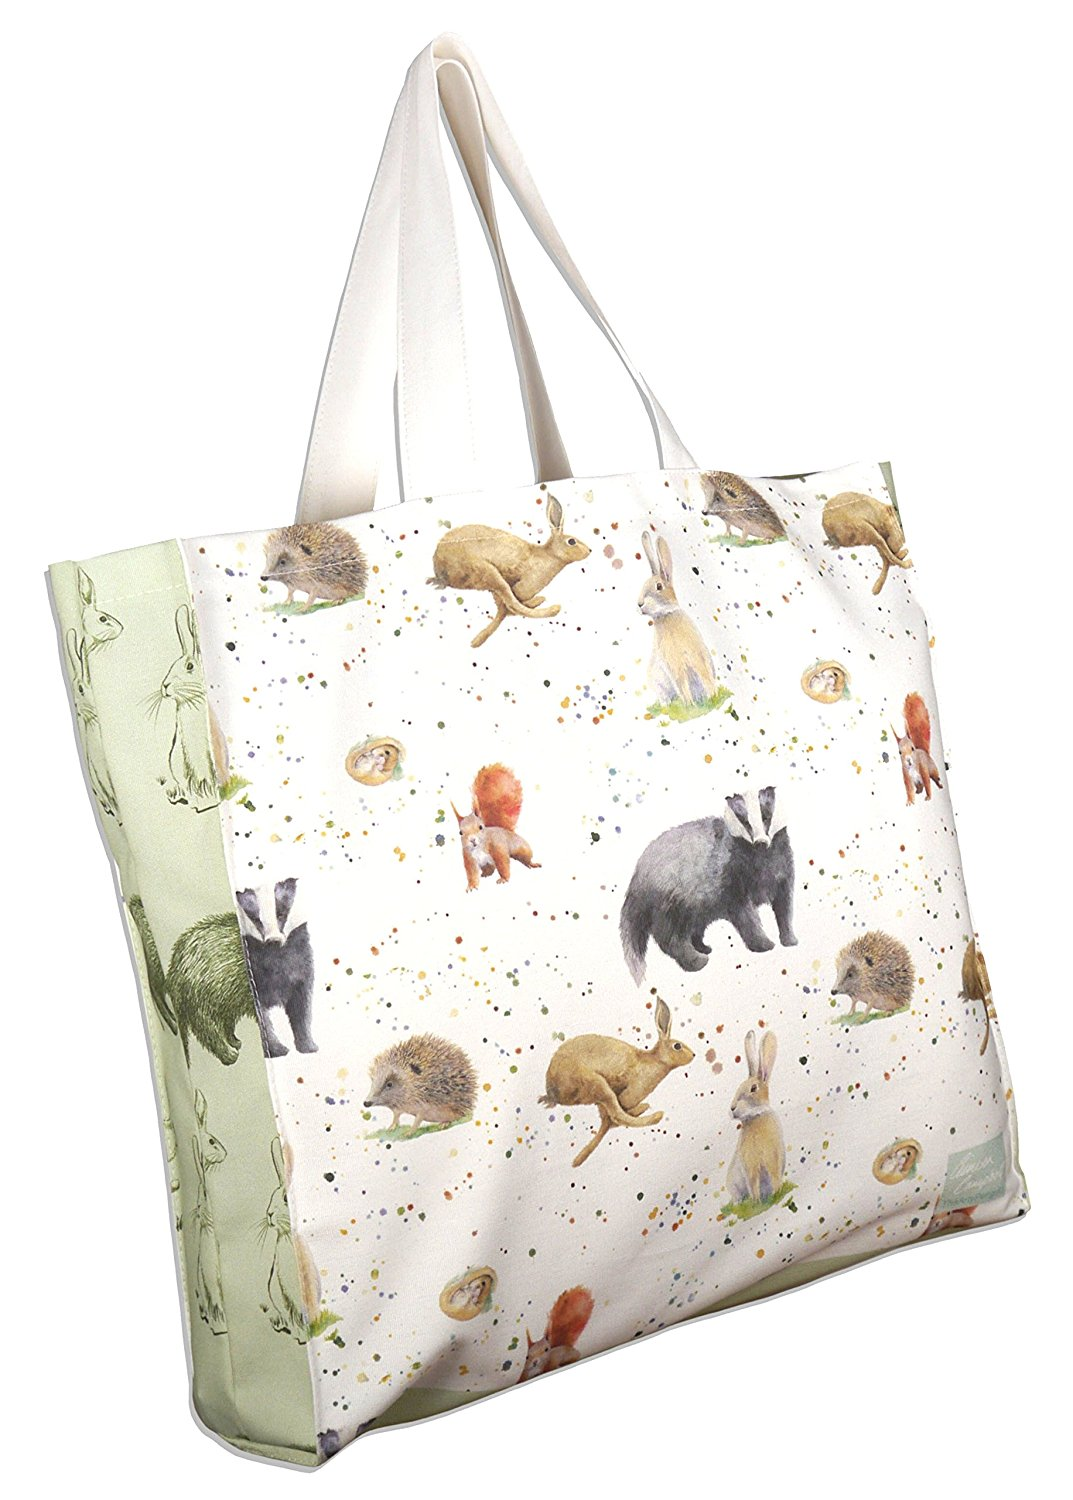 countryside animals shopping tote bag Ceinwen Campbell The Arty Penguin